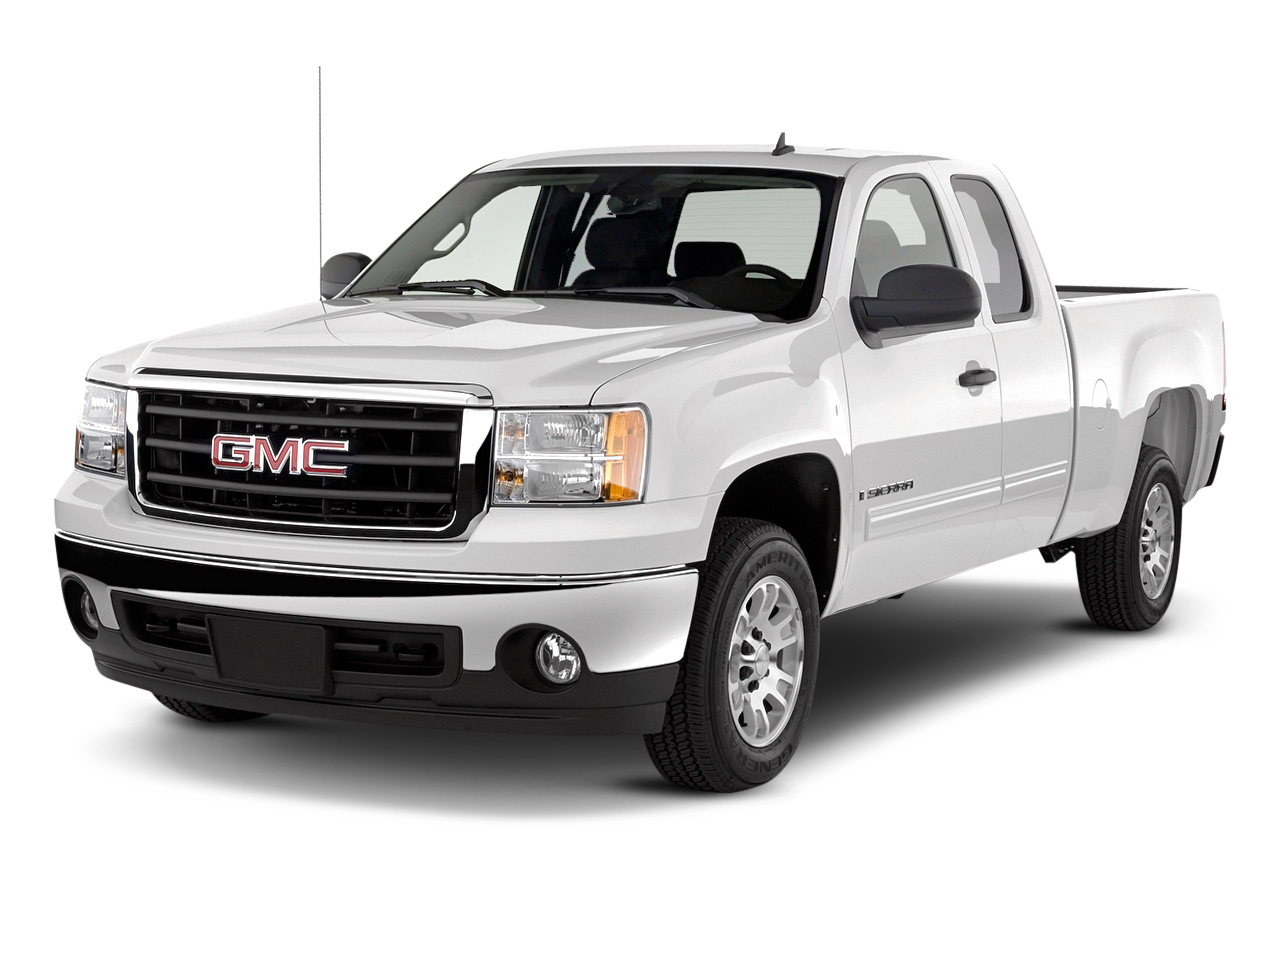 2011 gmc sierra 1500 gas mileage the car connection. Black Bedroom Furniture Sets. Home Design Ideas